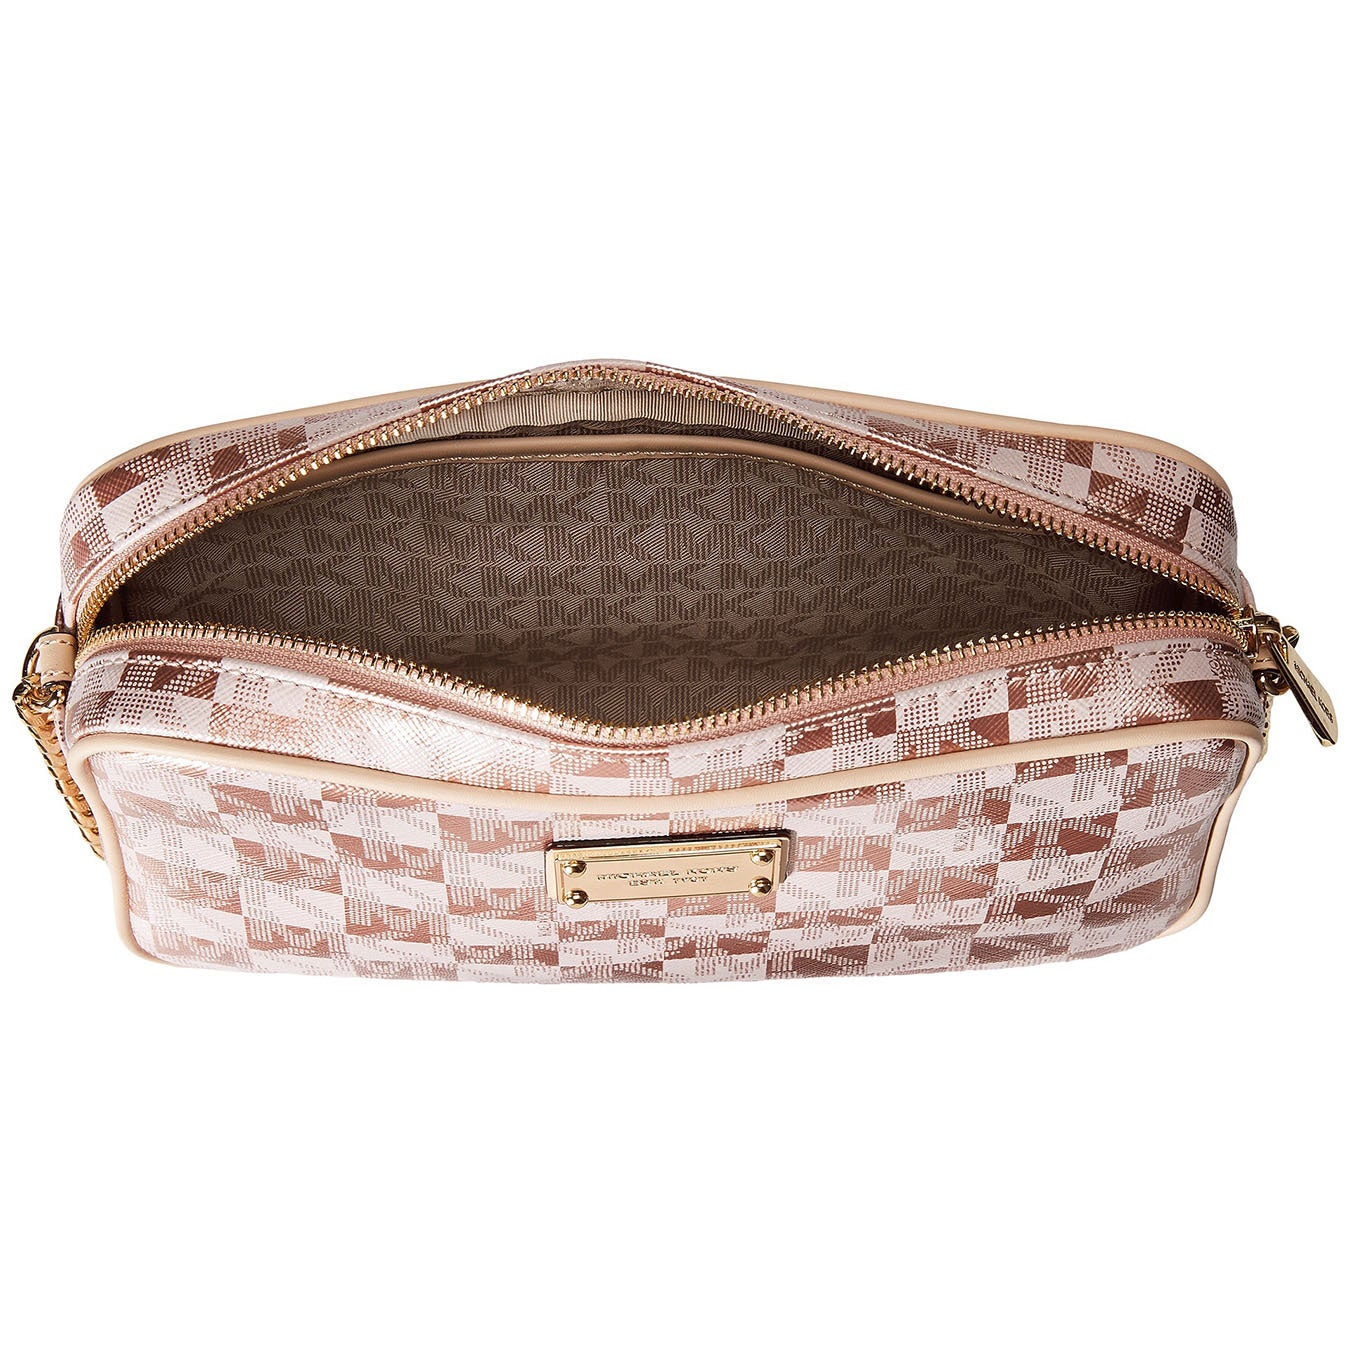 90ffa8b8c3a2 Shop Michael Kors Jet Set Large East West Checkerboard Rose Gold Crossbody  - Free Shipping Today - Overstock - 10888555